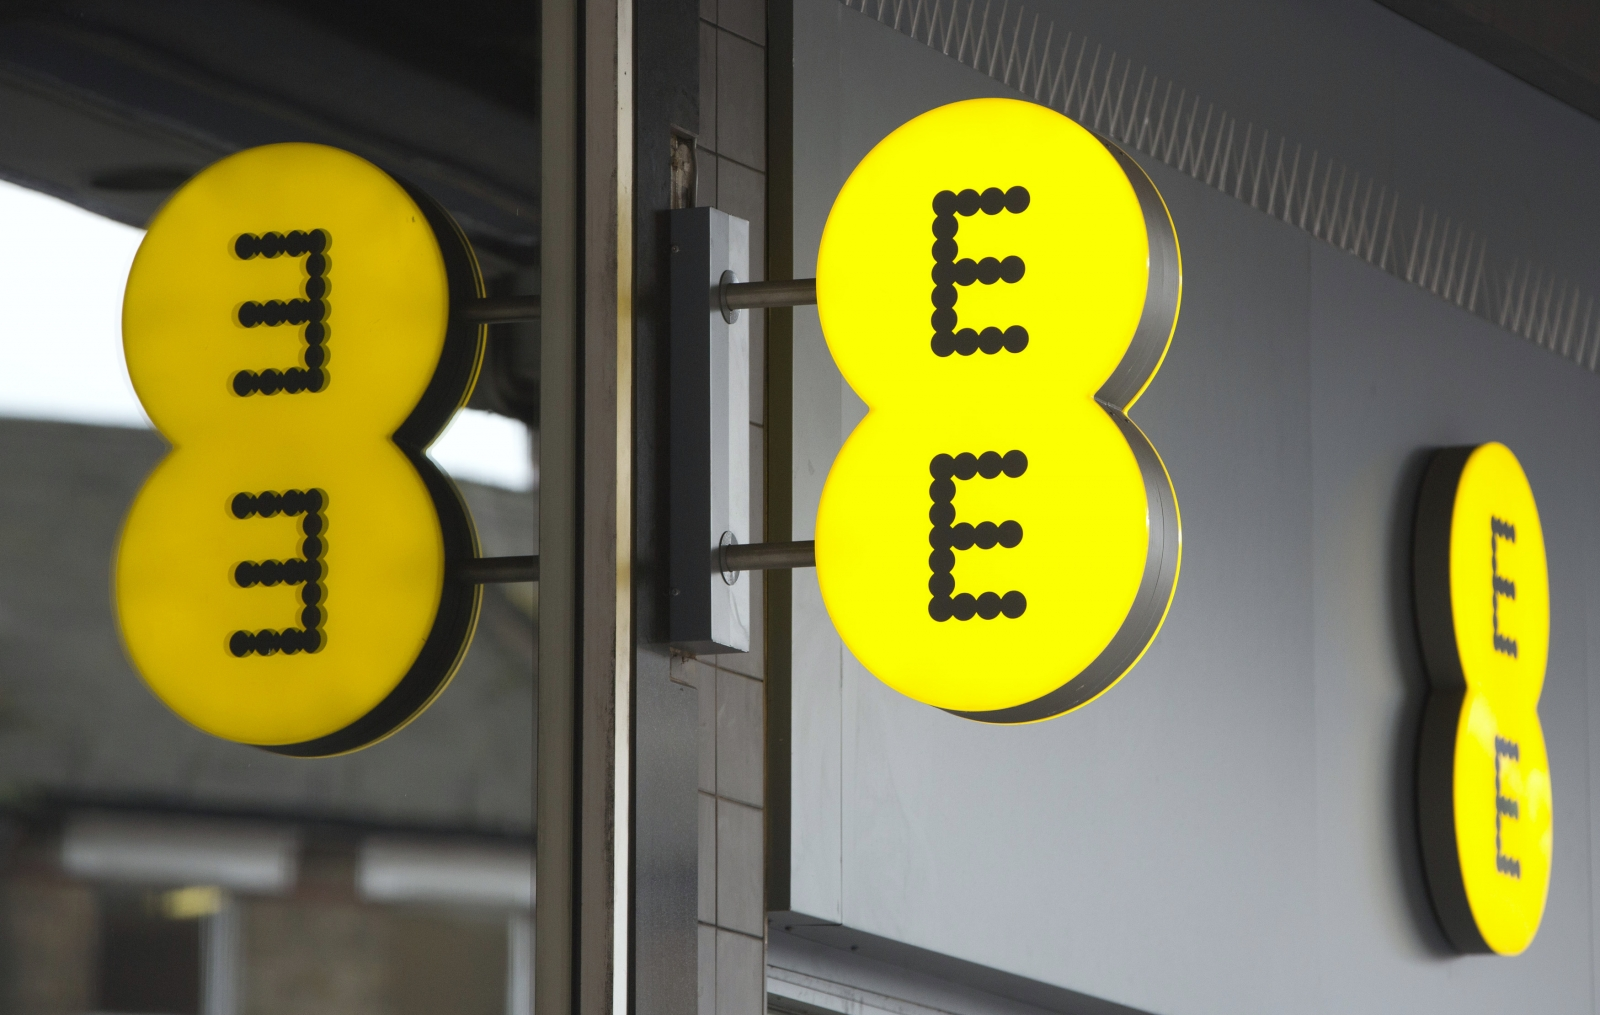 Ofcom fines EE 2.7m for overcharging customers